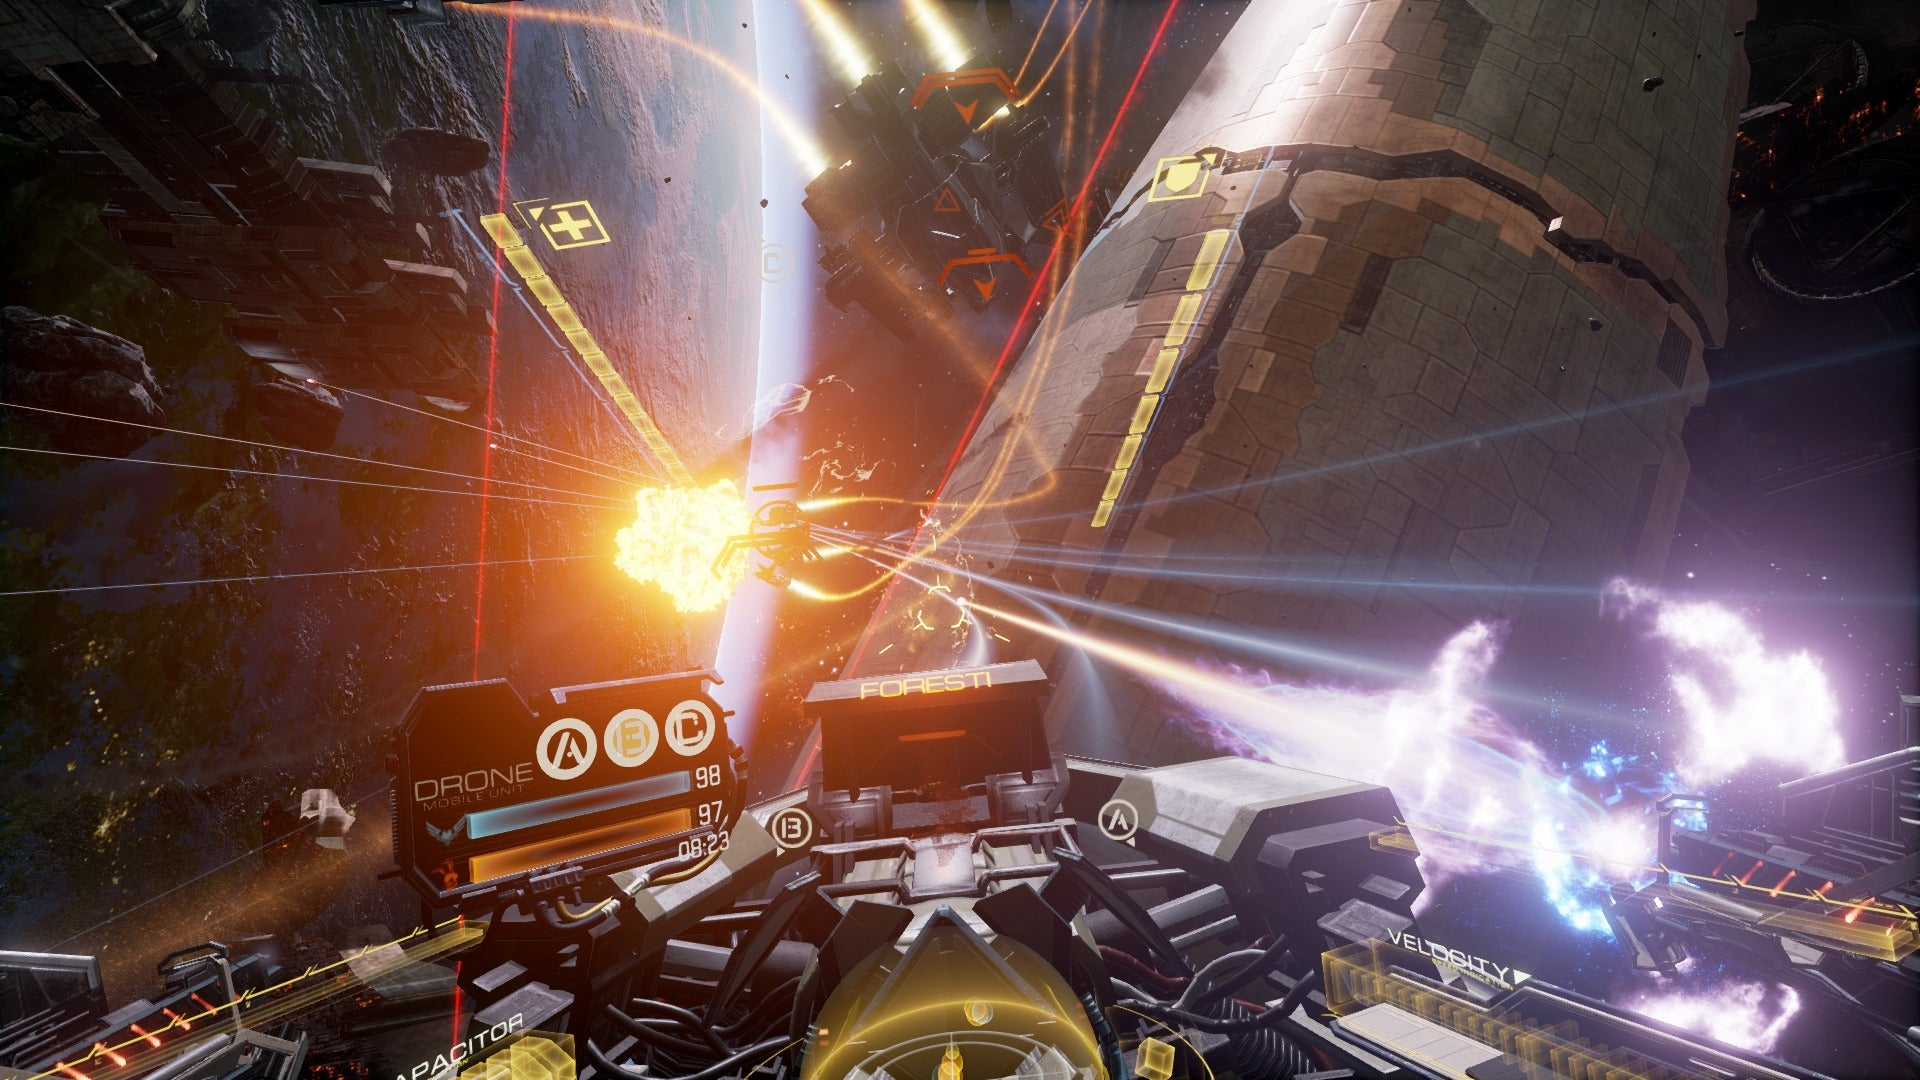 All Oculus Rift preorders will include exhilarating VR space combat